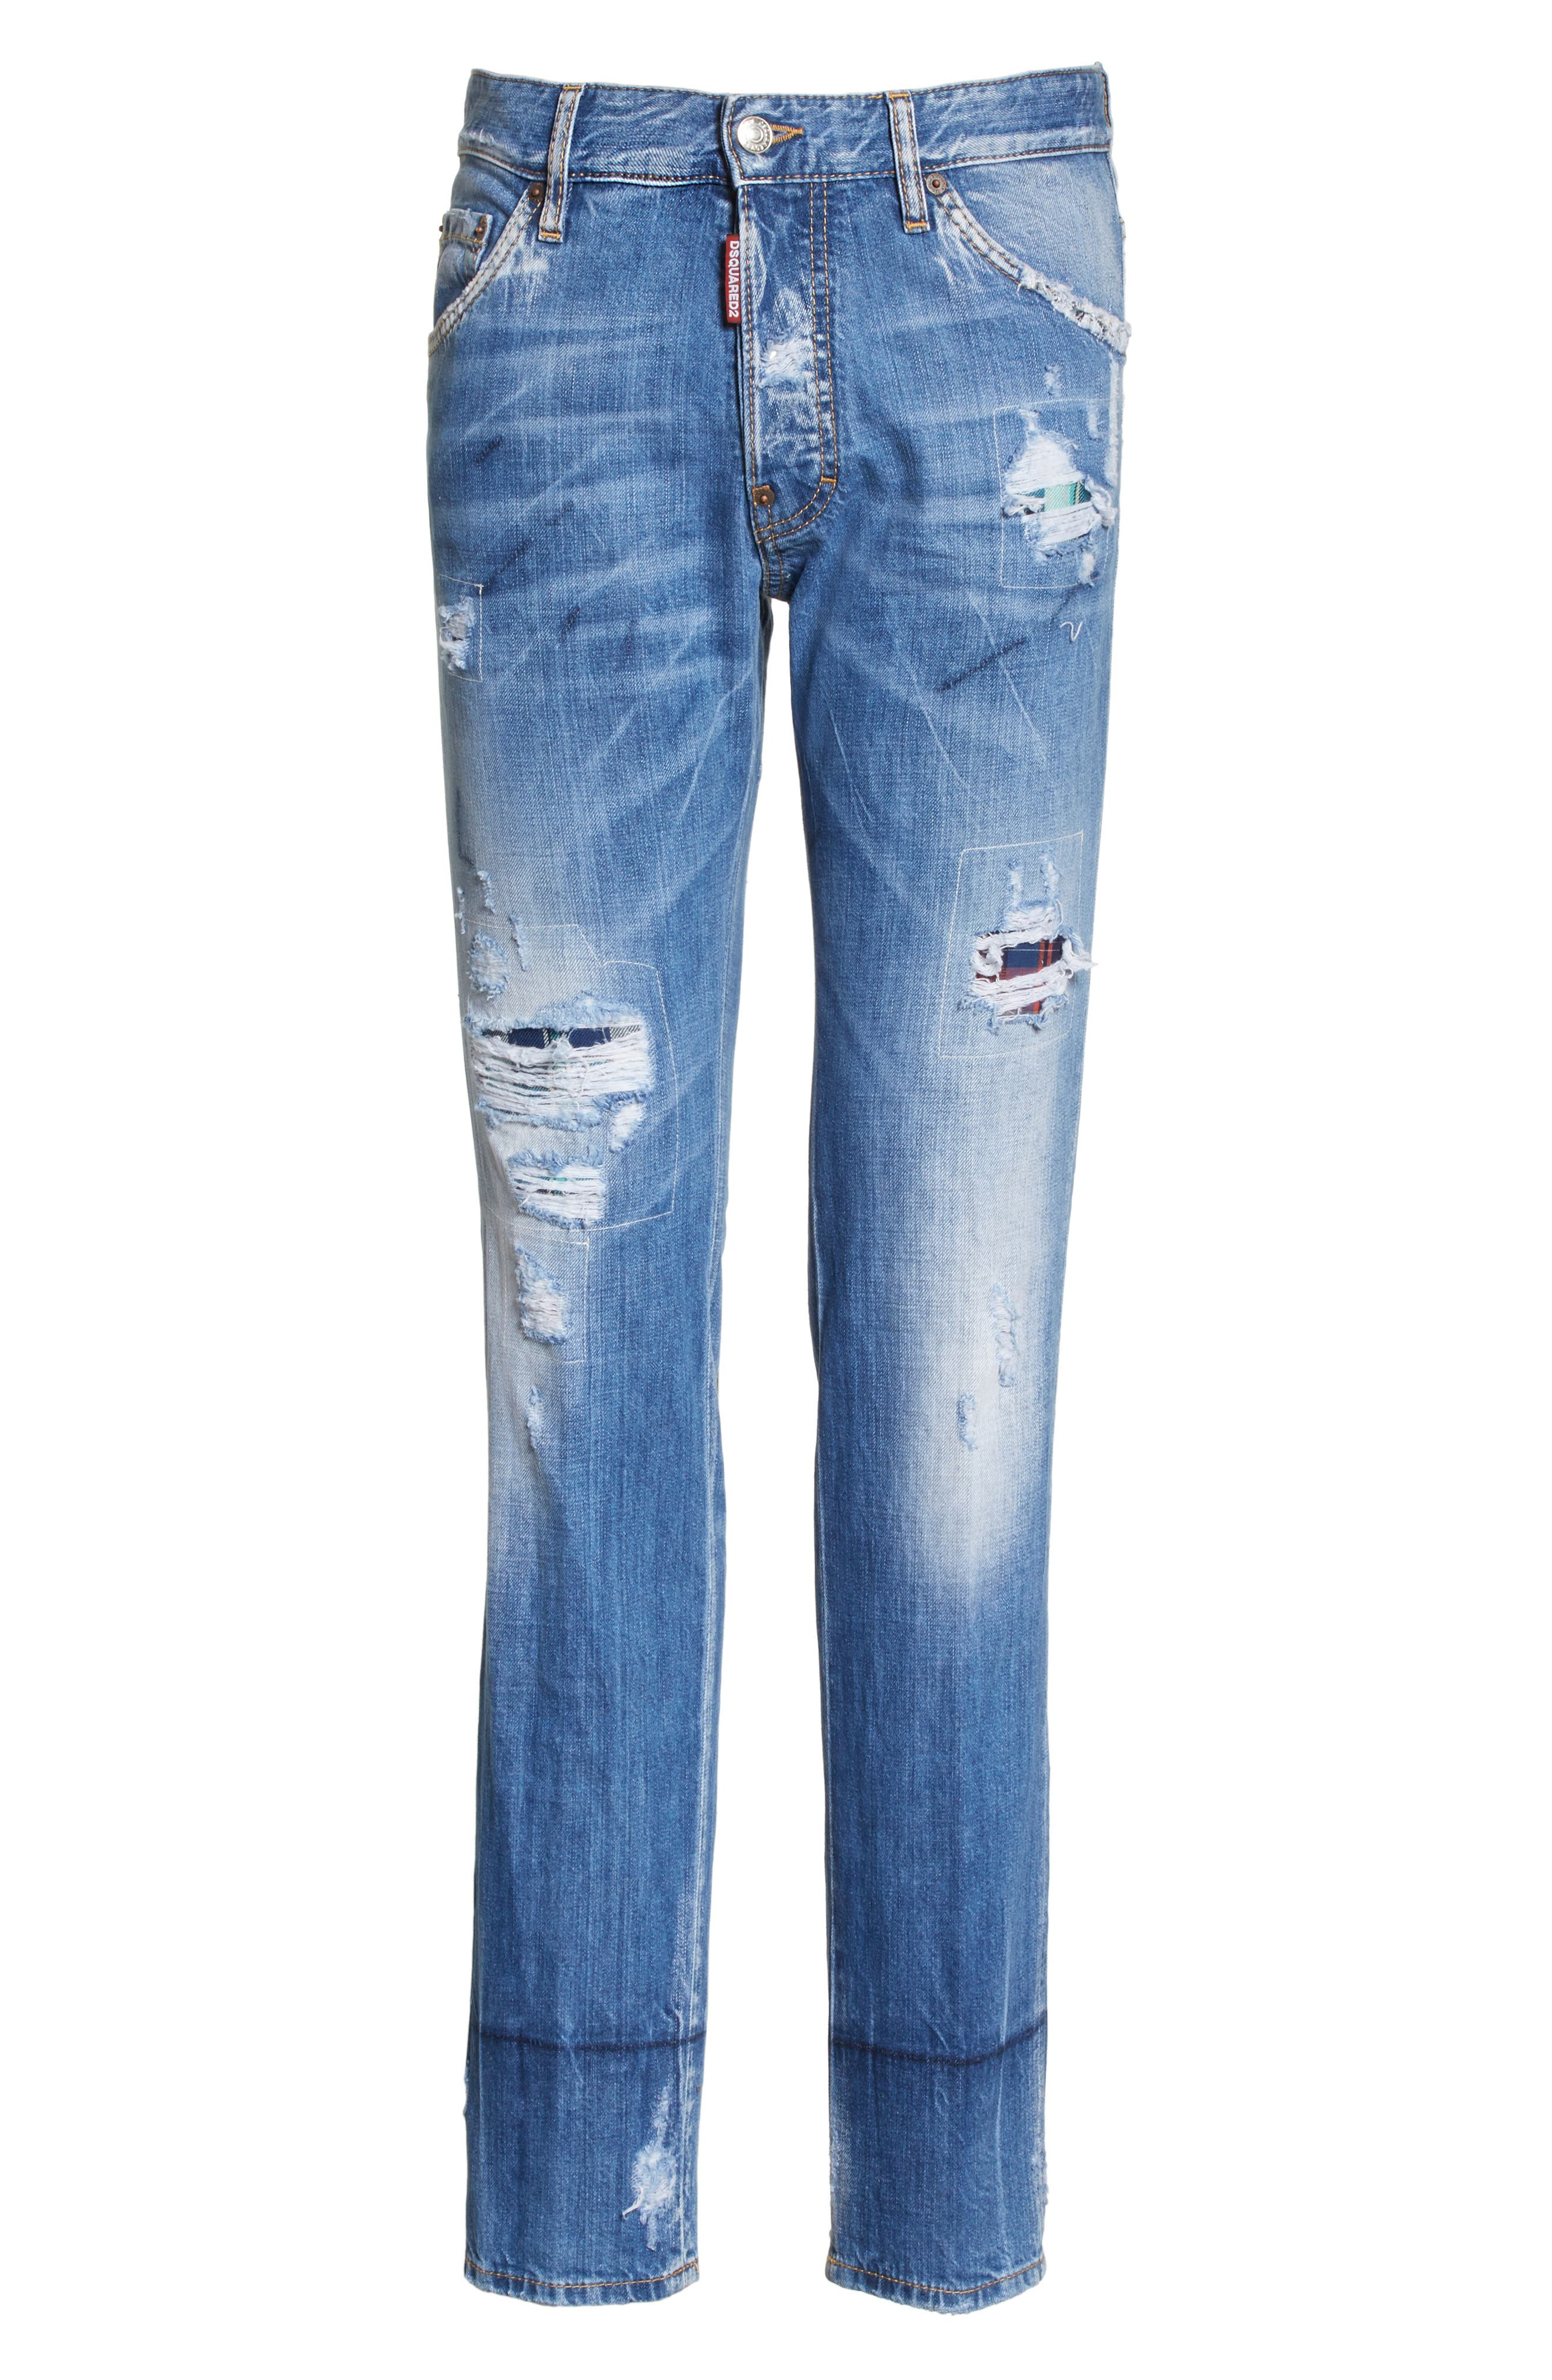 Cool Guy Skinny Fit Jeans,                             Alternate thumbnail 6, color,                             Navy/Blue